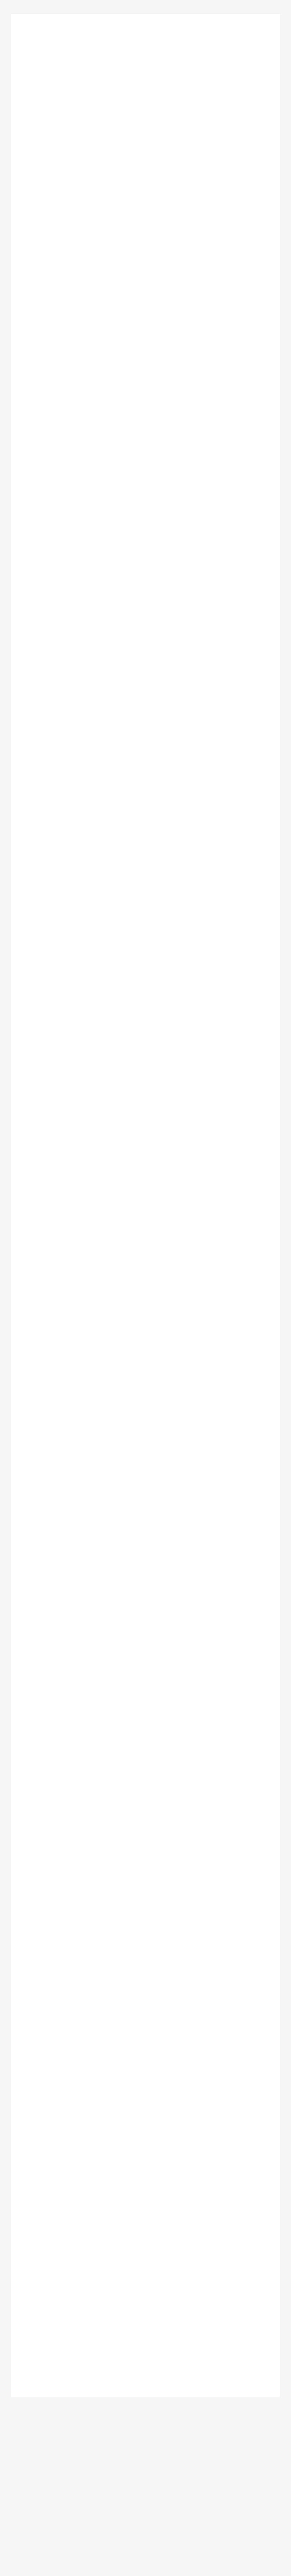 Super Bright White Screen, HD Png Download, Free Download